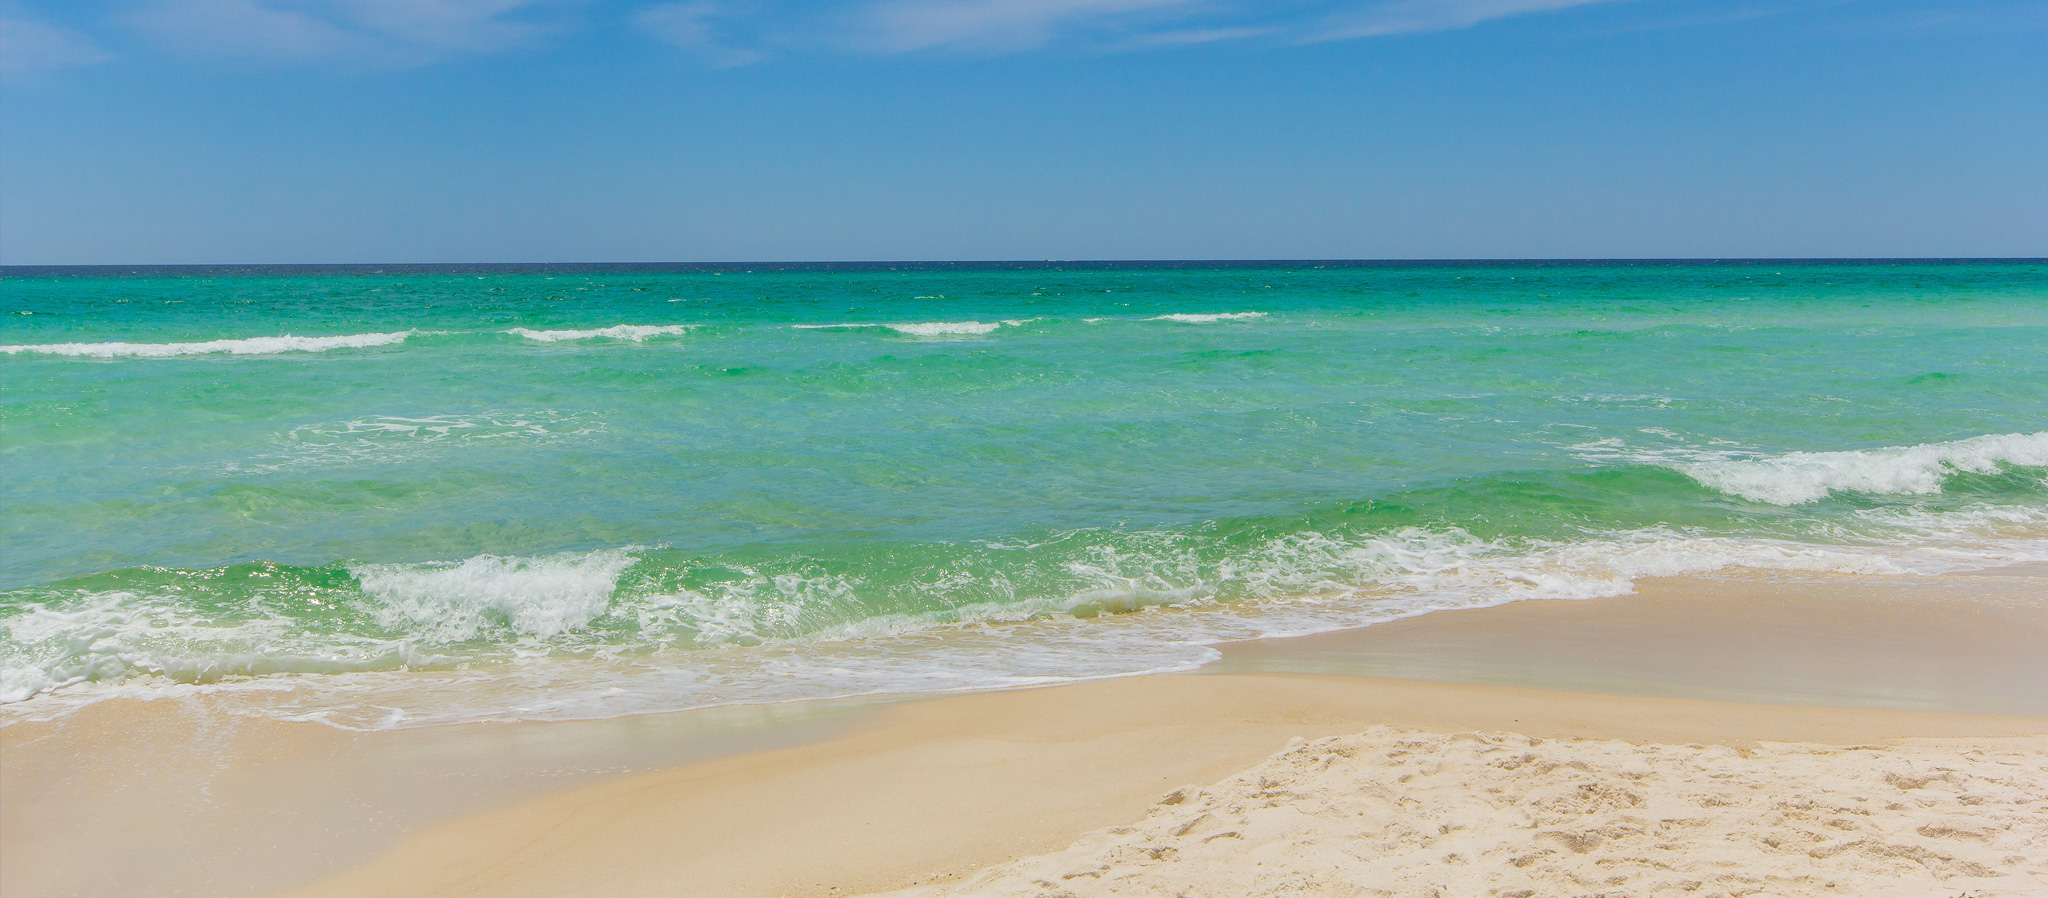 Destin Florida vacations by the beach